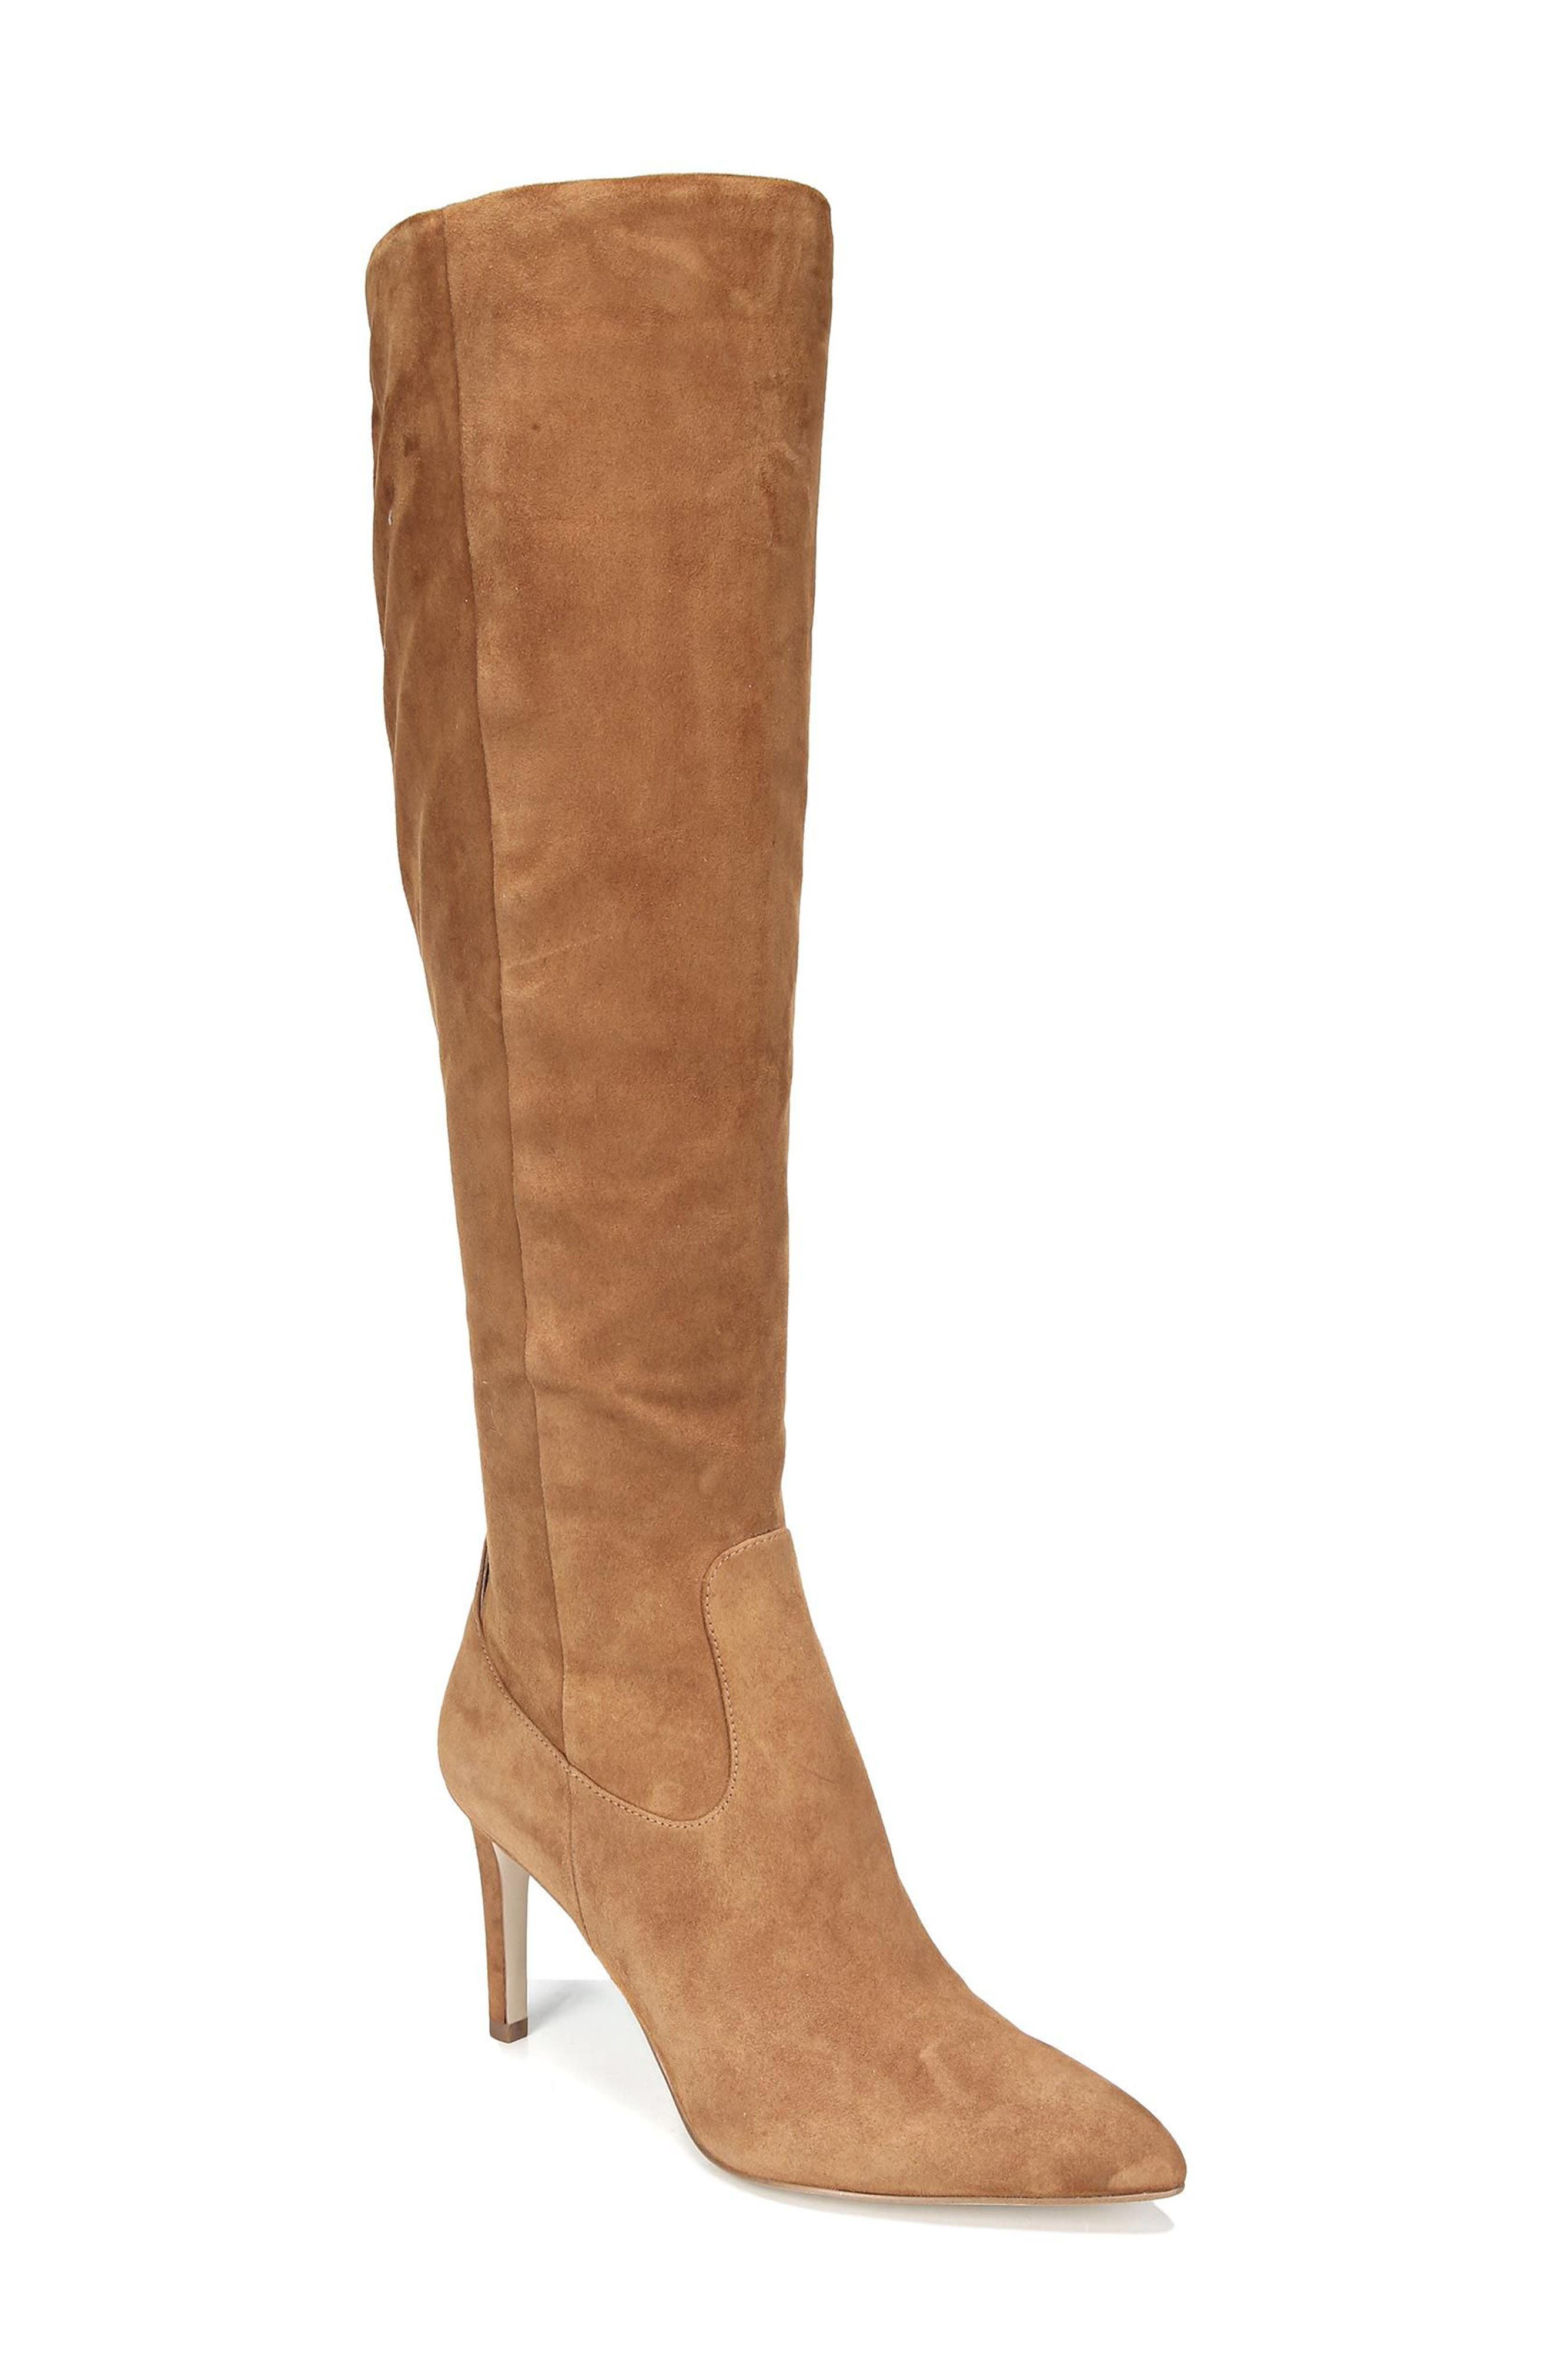 Olencia Knee High Boot,                         Main,                         color, Luggage Suede